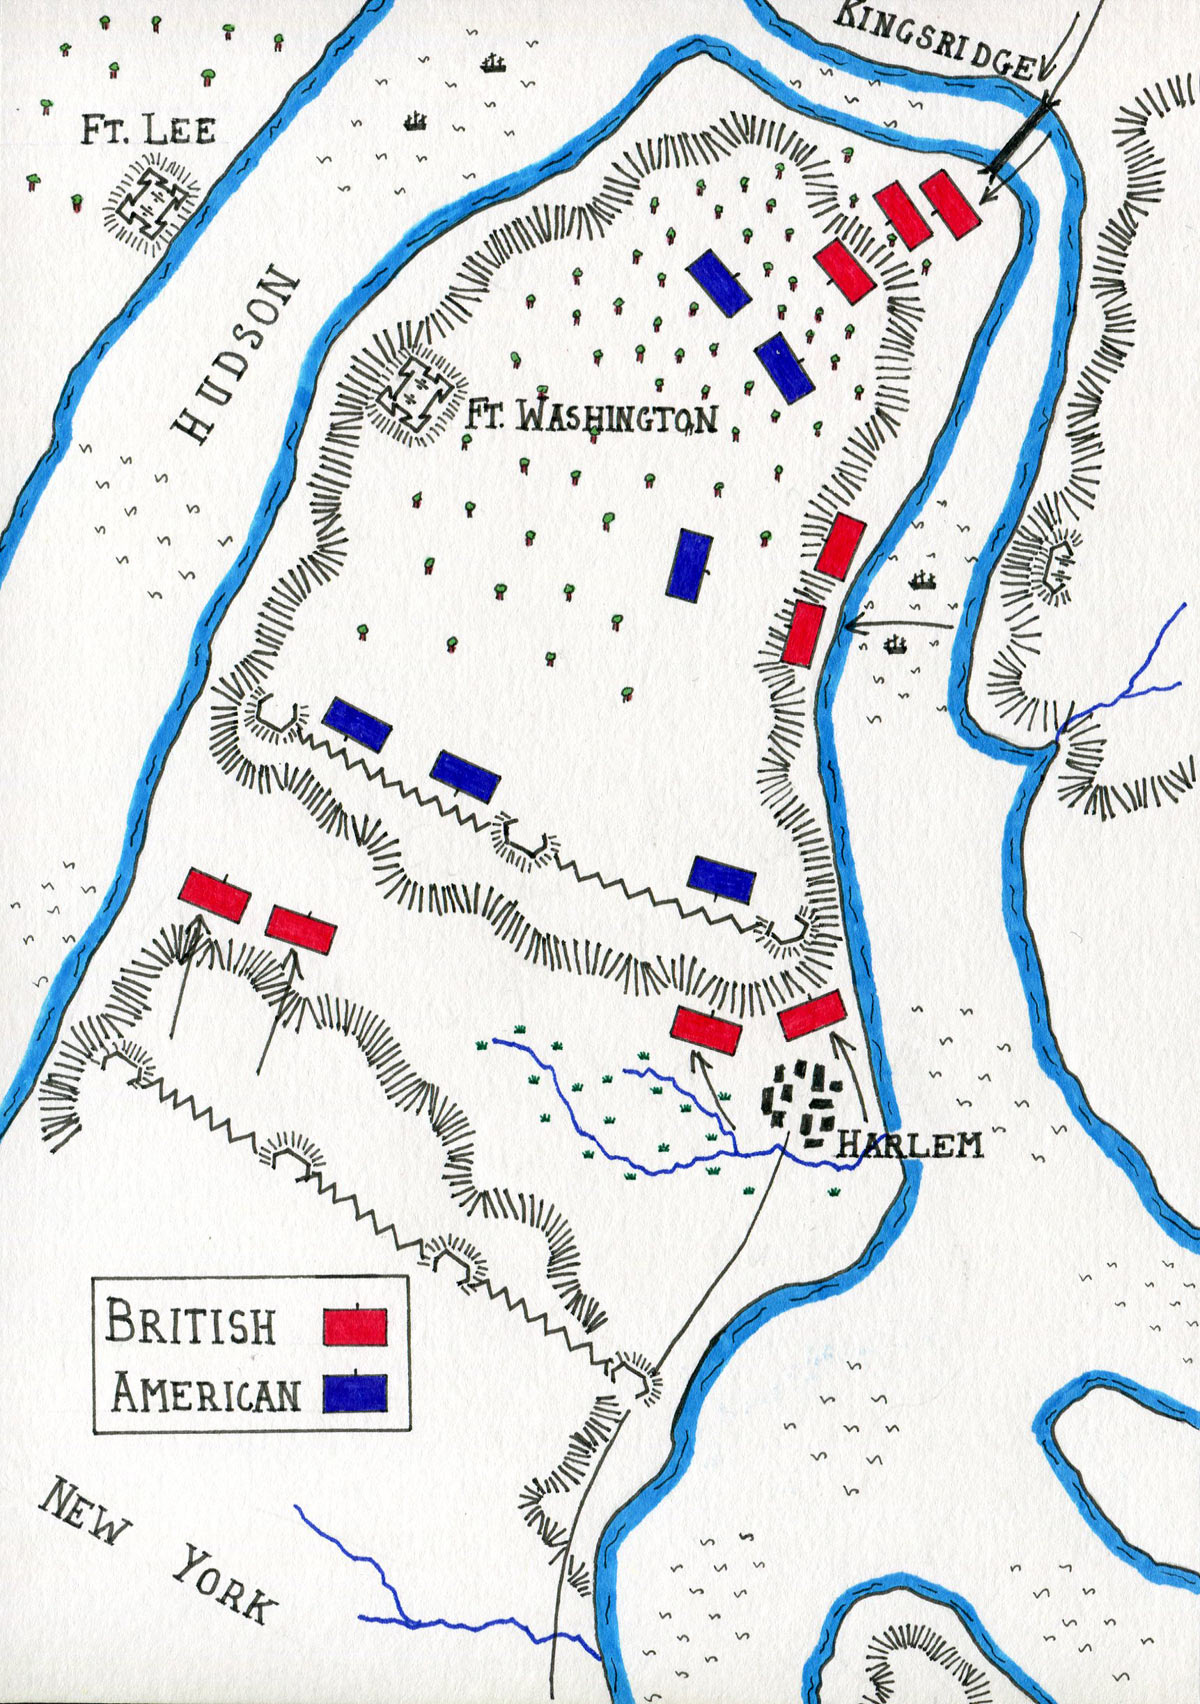 Map of the Battle of Fort Washington on 17th November 1776 in the American Revolutionary War: map by John Fawkes